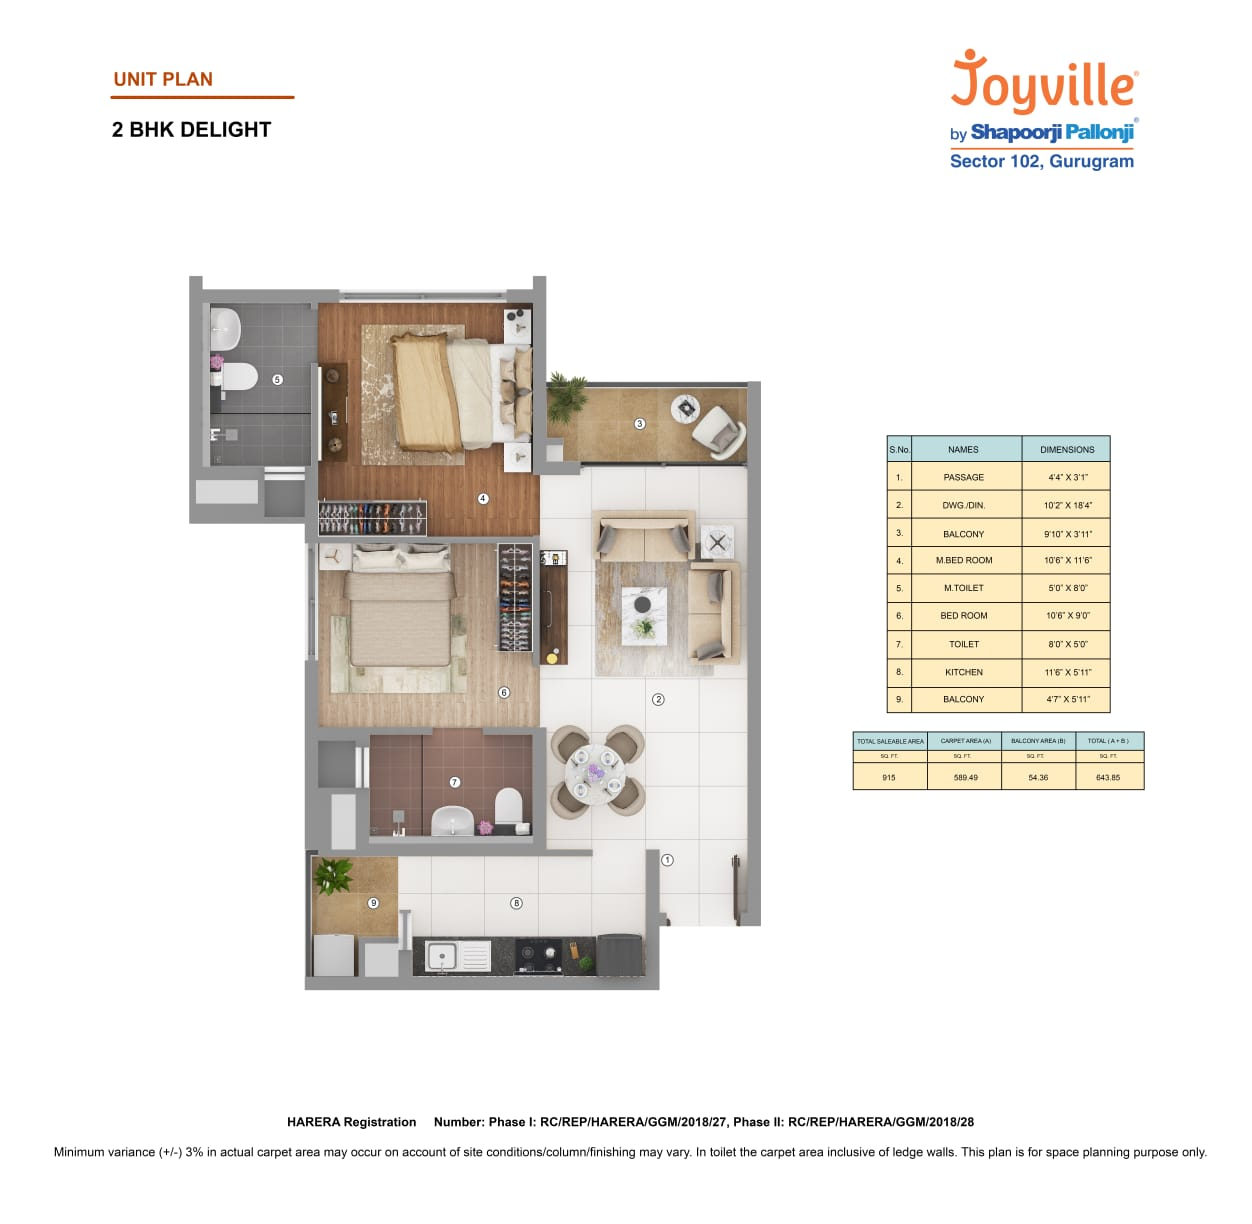 Joyville 2BHK Delight Area-915